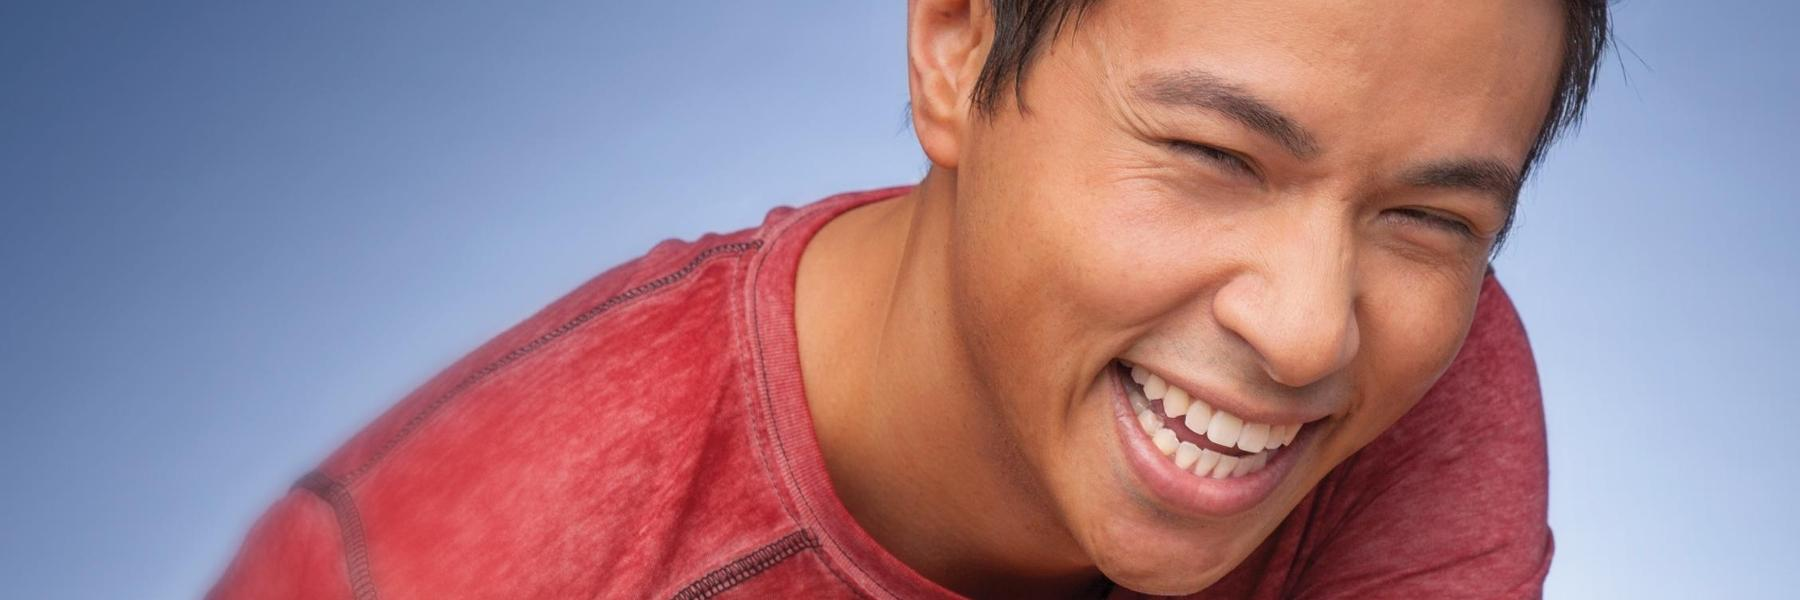 Boy with Braces | Temporary Anchorage Devices Santa Monica CA